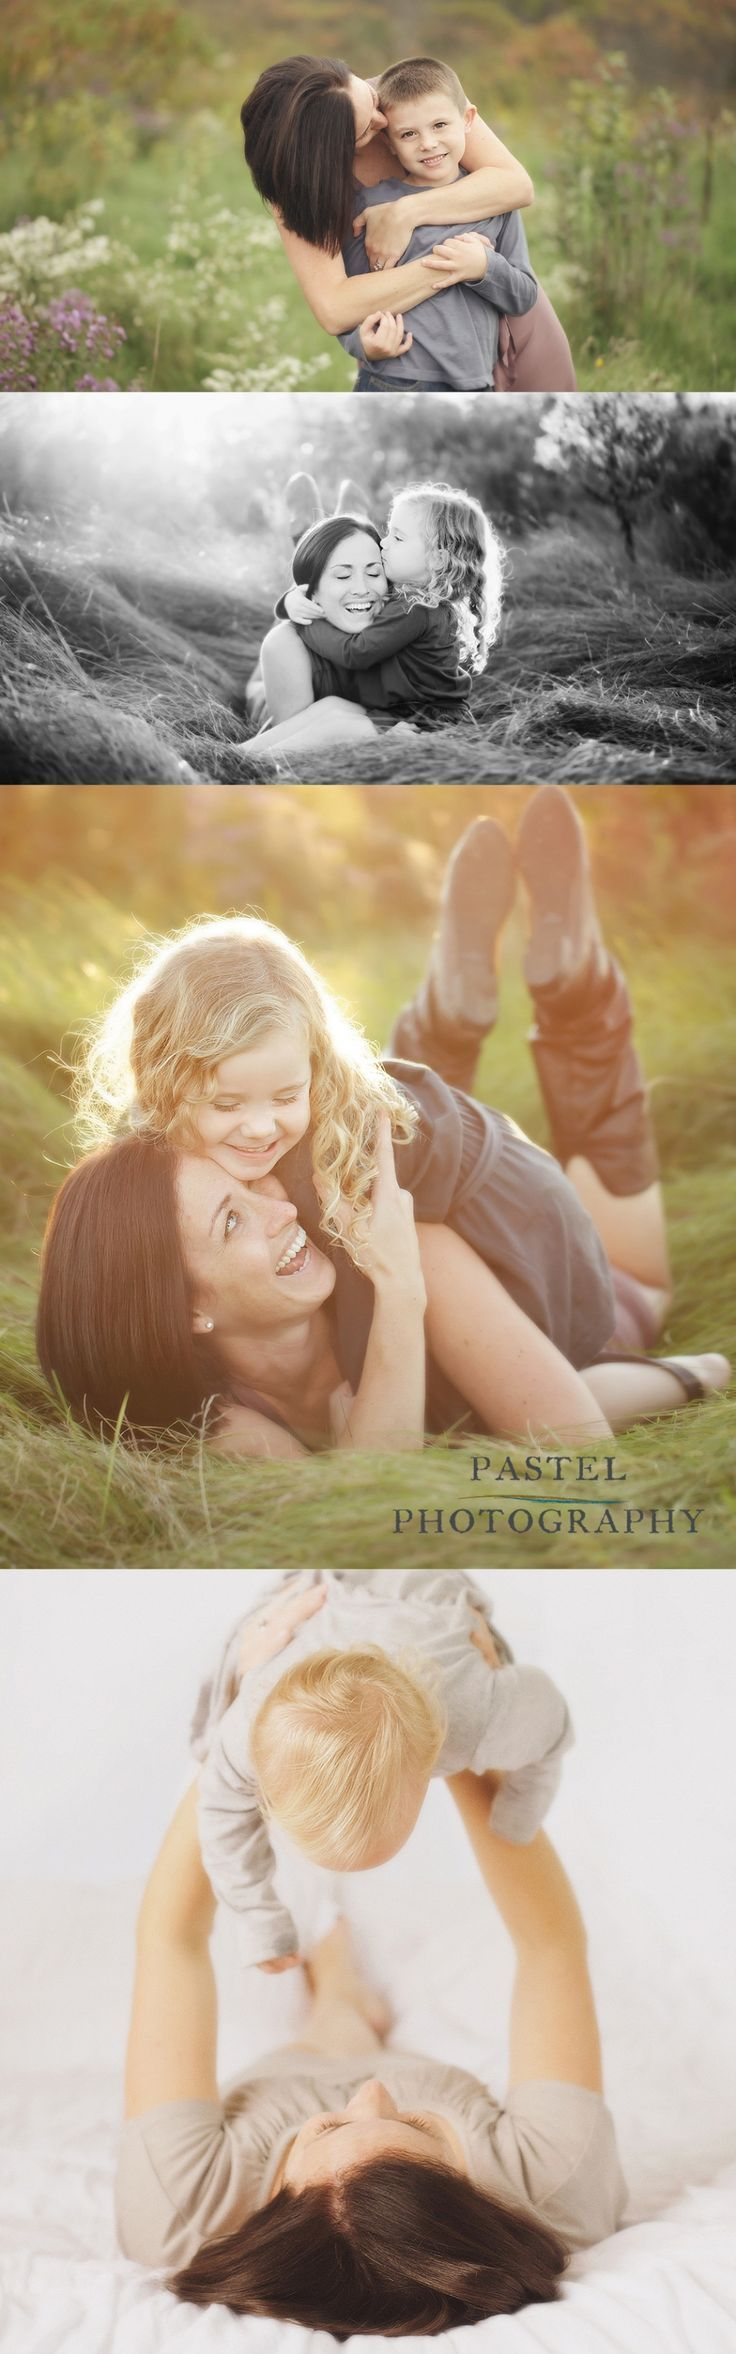 best photo duenfants images on pinterest family pictures